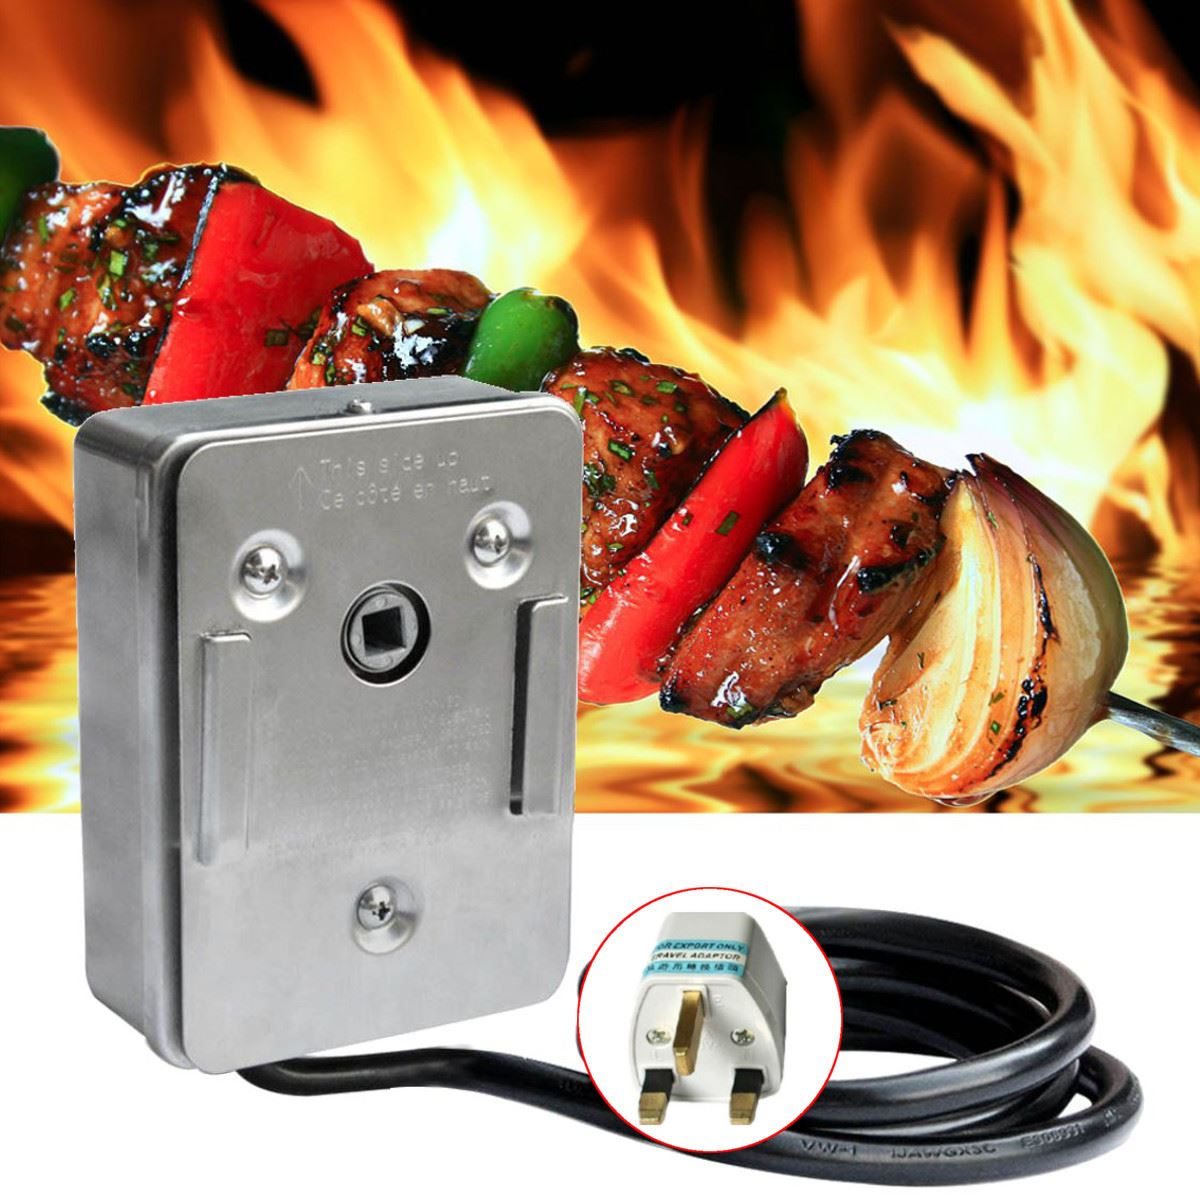 220V Onlyfire Universal Grill Electric Replacement BBQ Grill Heavy Duty Stainless Steel <font><b>Rotisserie</b></font> Motor Electric Motor